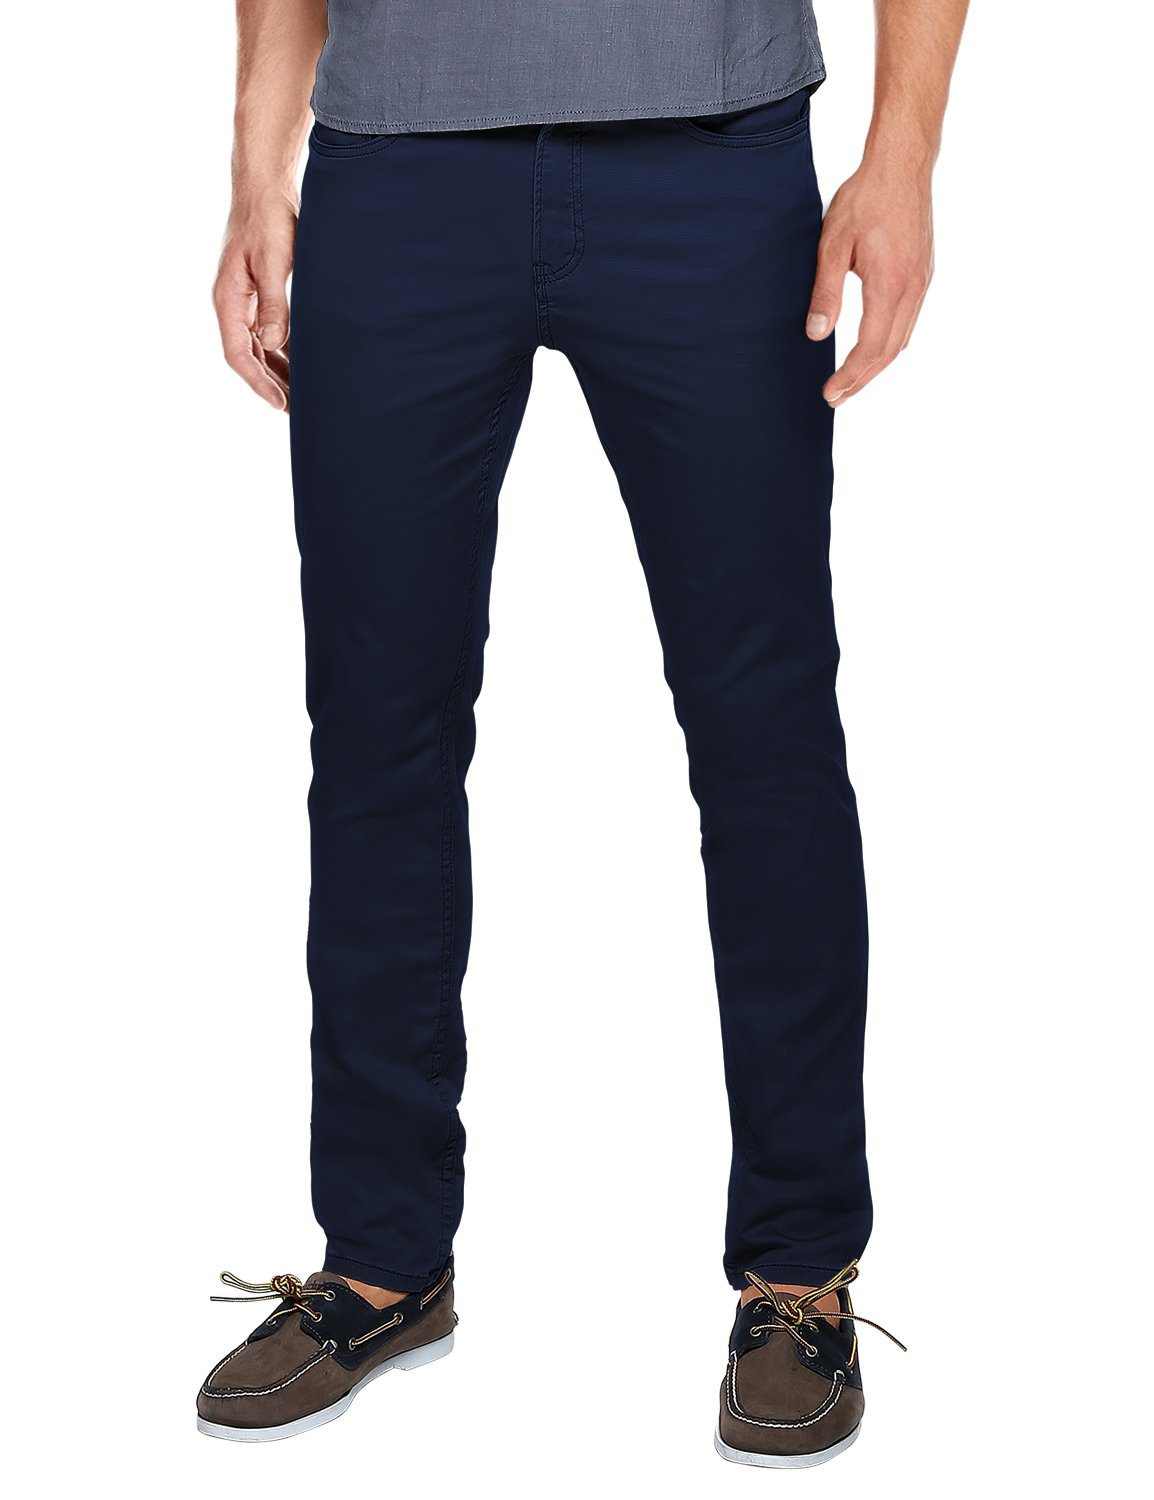 Match Mens Slim-Tapered Flat-Front Casual Pants (32, 8082 Blue)